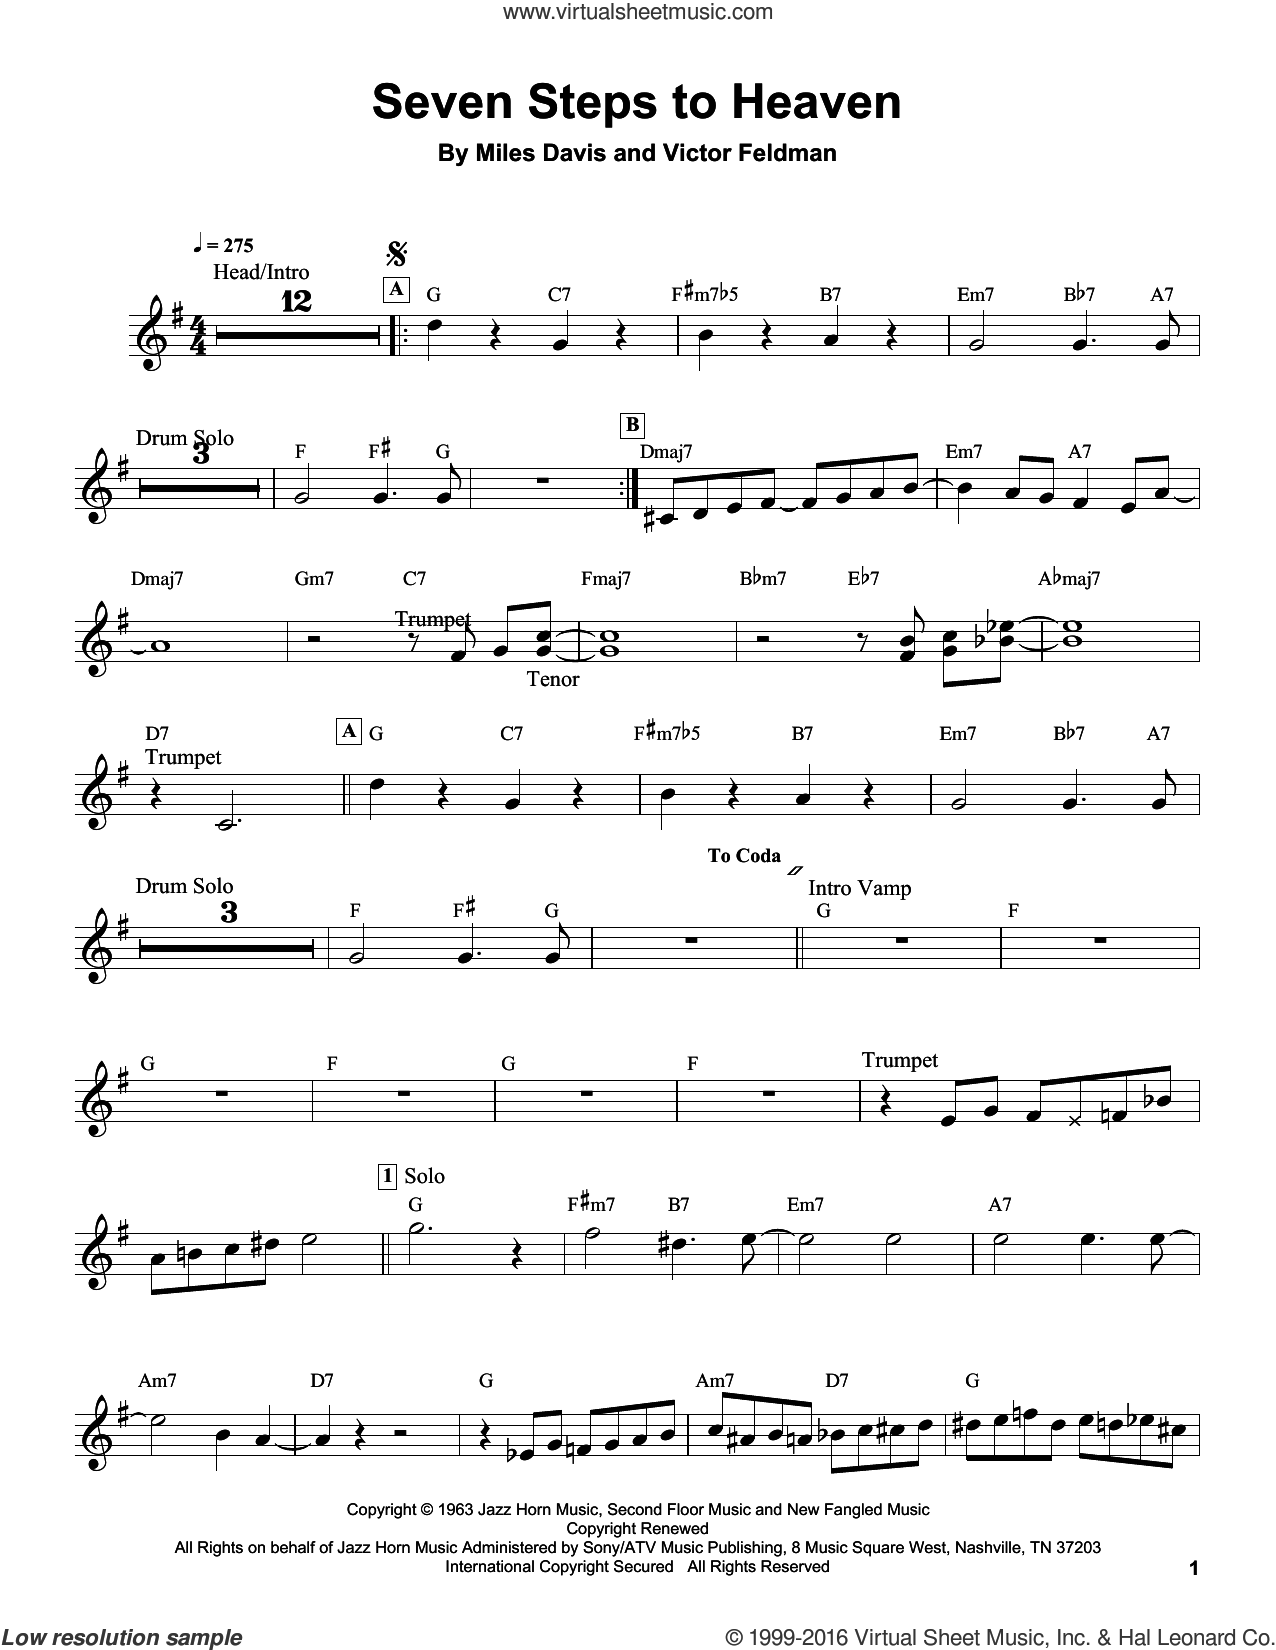 Seven Steps To Heaven sheet music for trumpet solo (transcription) by Miles Davis. Score Image Preview.